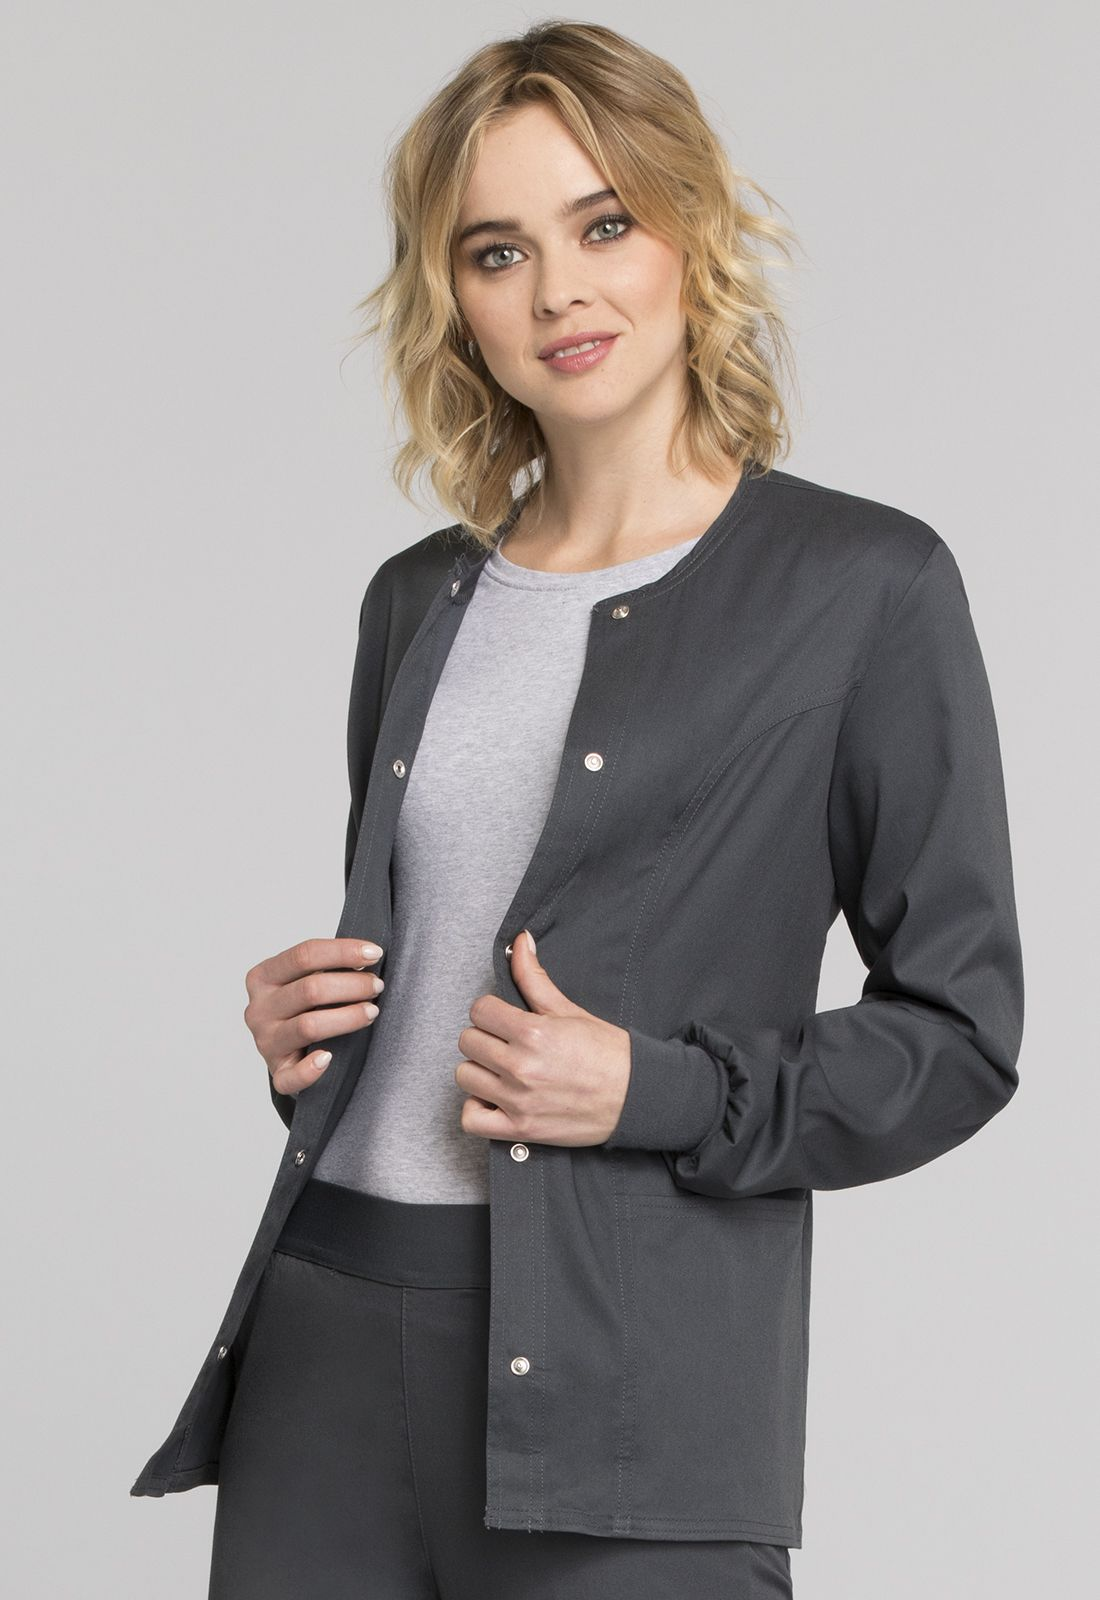 https://medcloth.by/images/stories/virtuemart/product/cherokee-1330-pewter-4.jpg